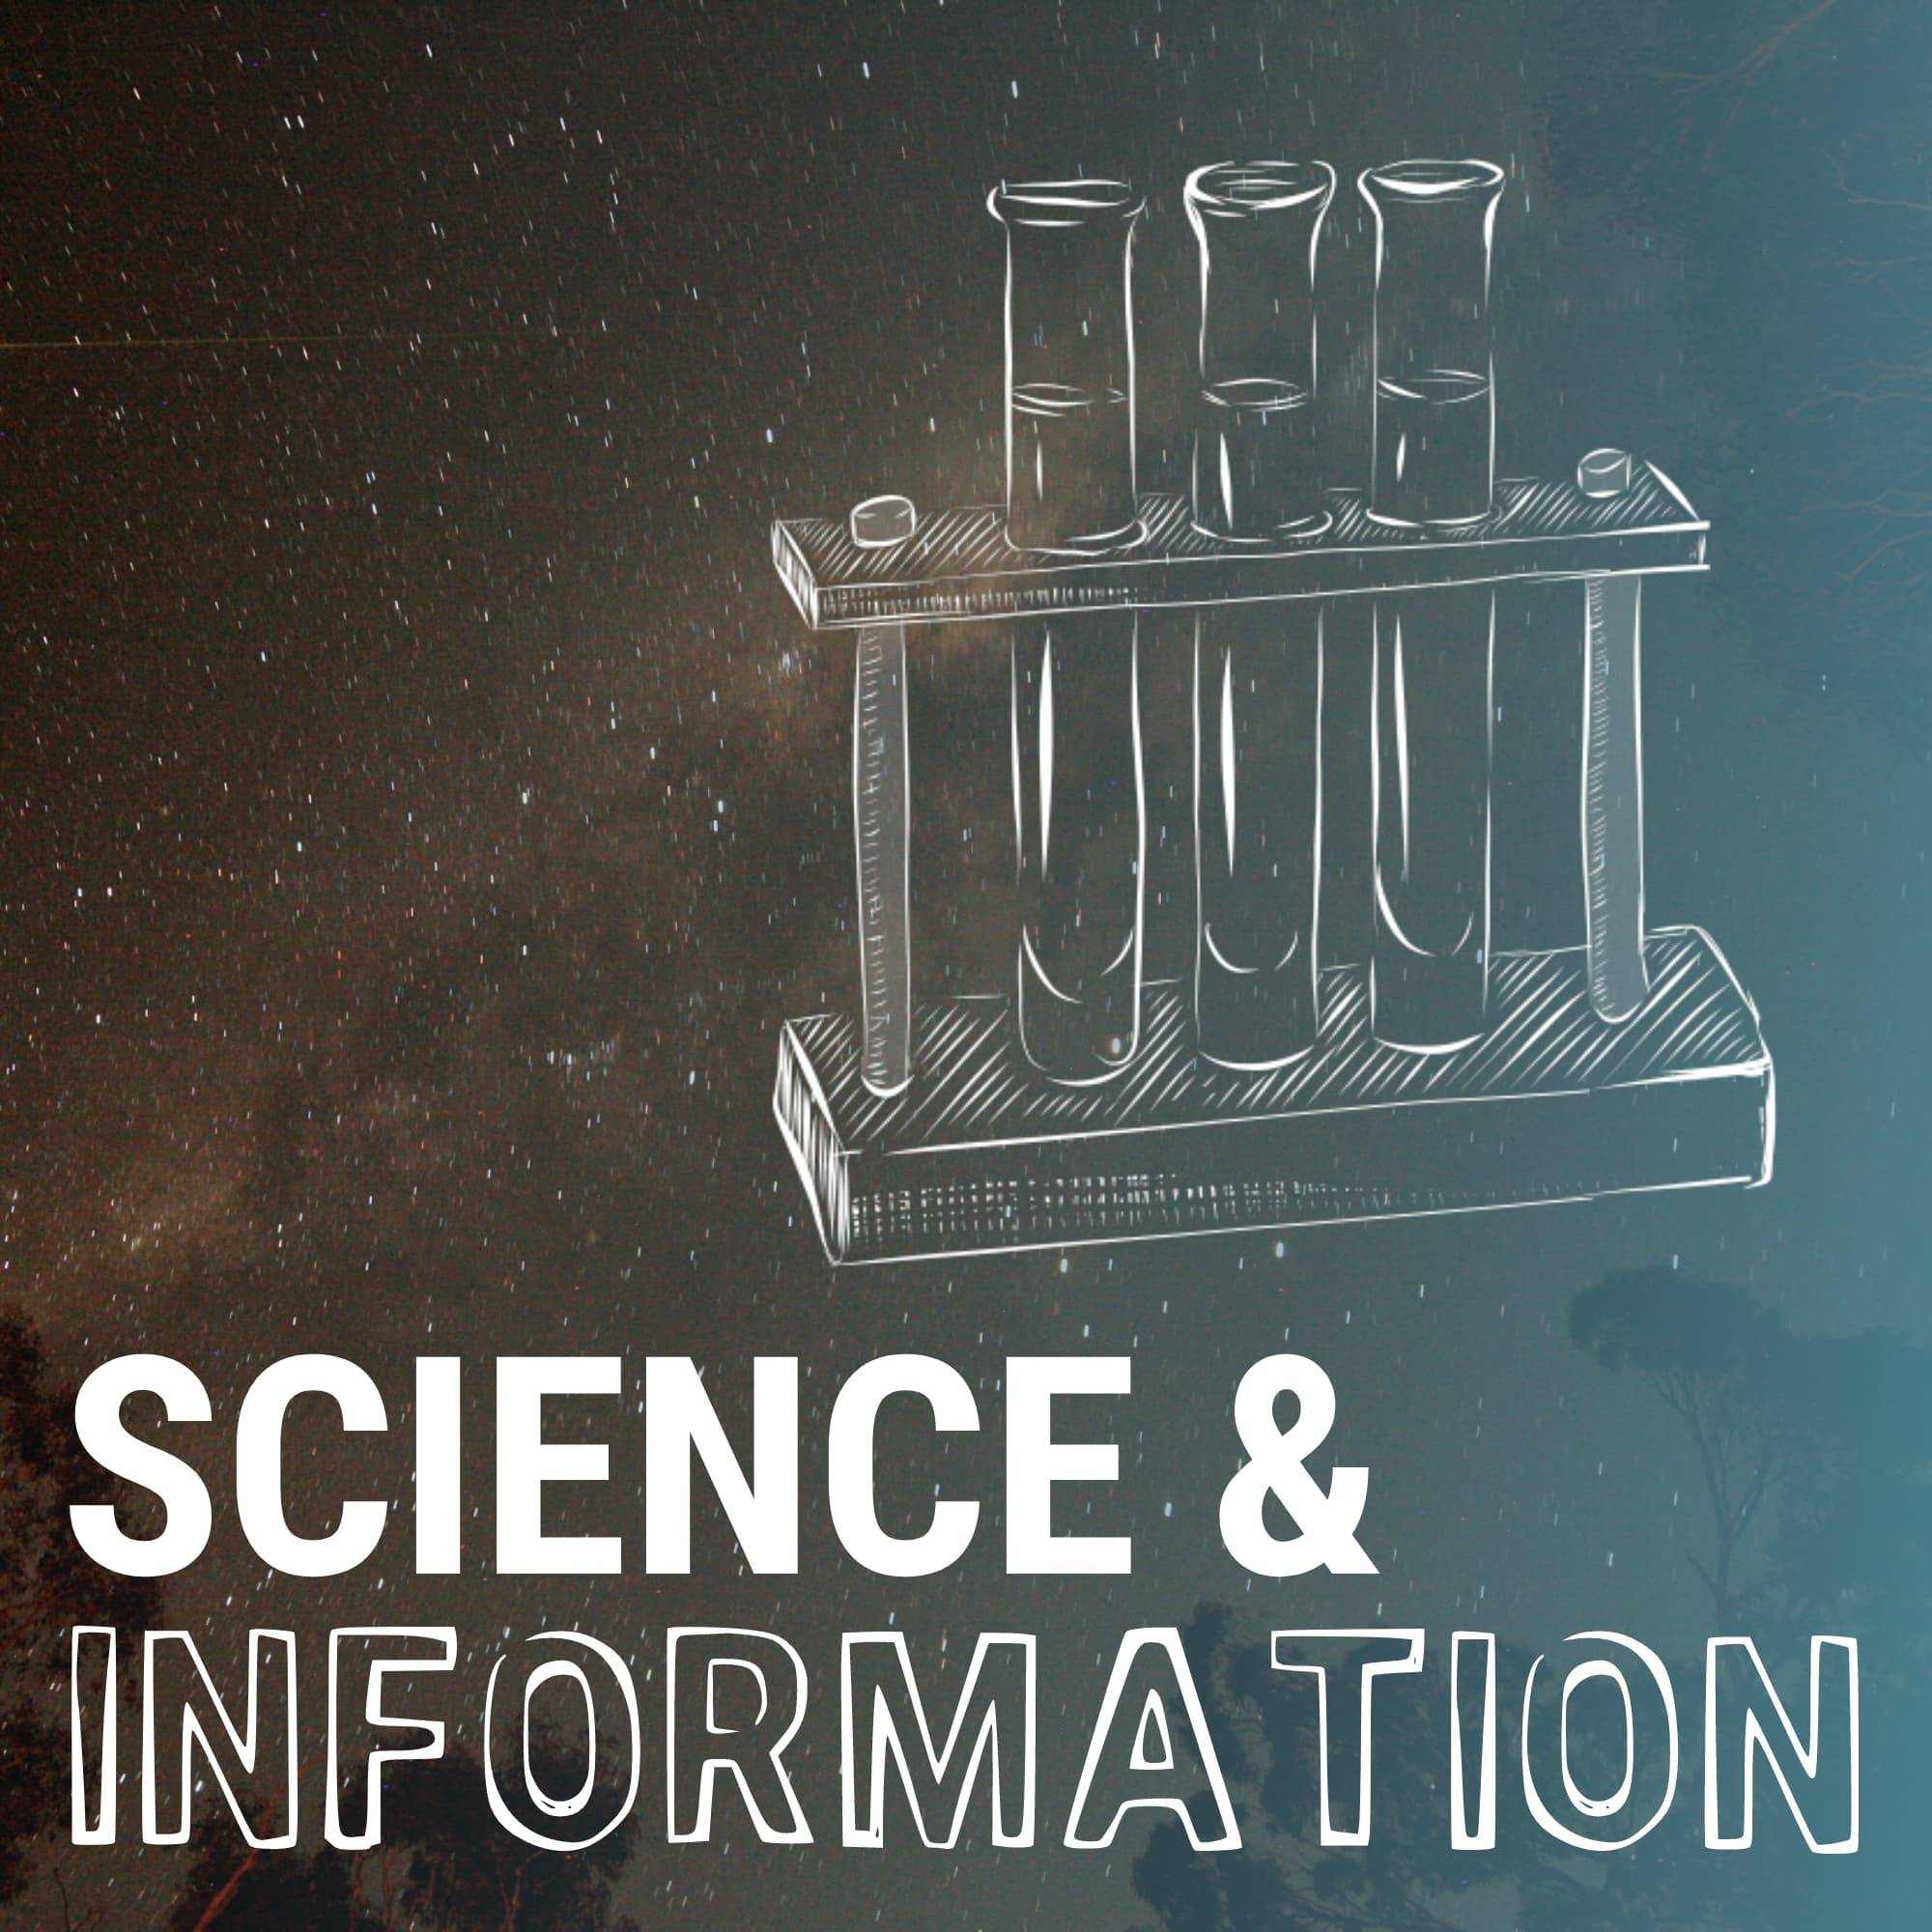 Science & Information